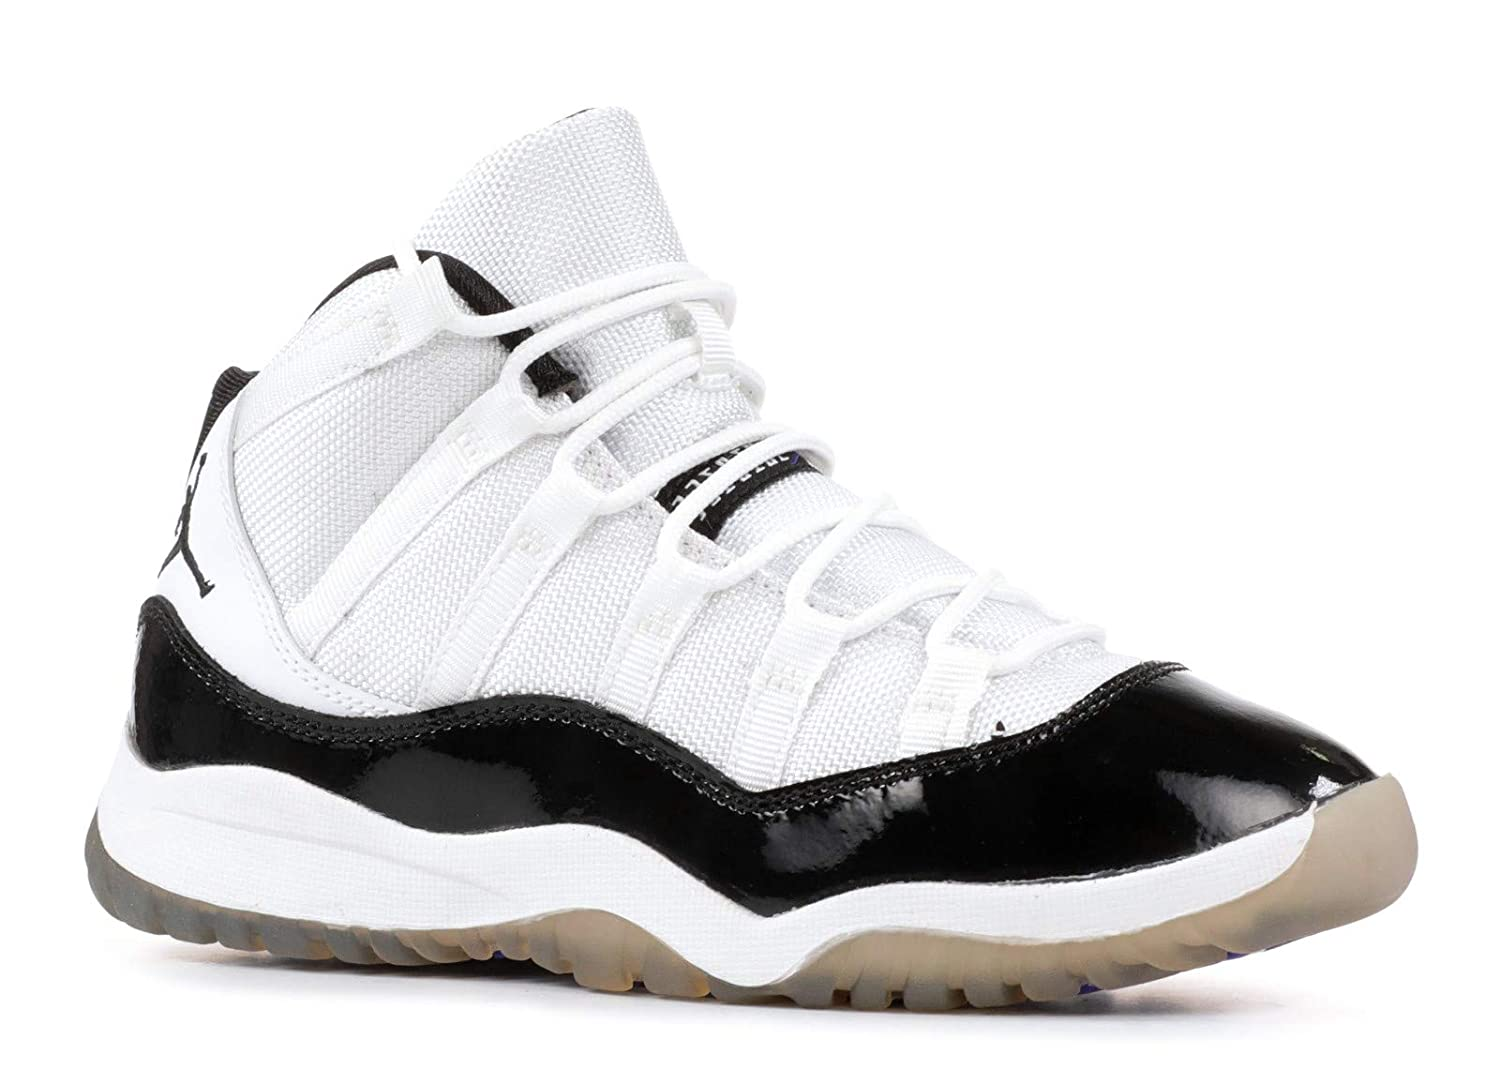 online store bc552 edf96 Amazon.com  Nike Air Jordan 11 Retro (PS) Concord Little Kids Basketball  Shoes  378039-107  White Black-Dark Concord Boys Shoes 378039-107  Shoes